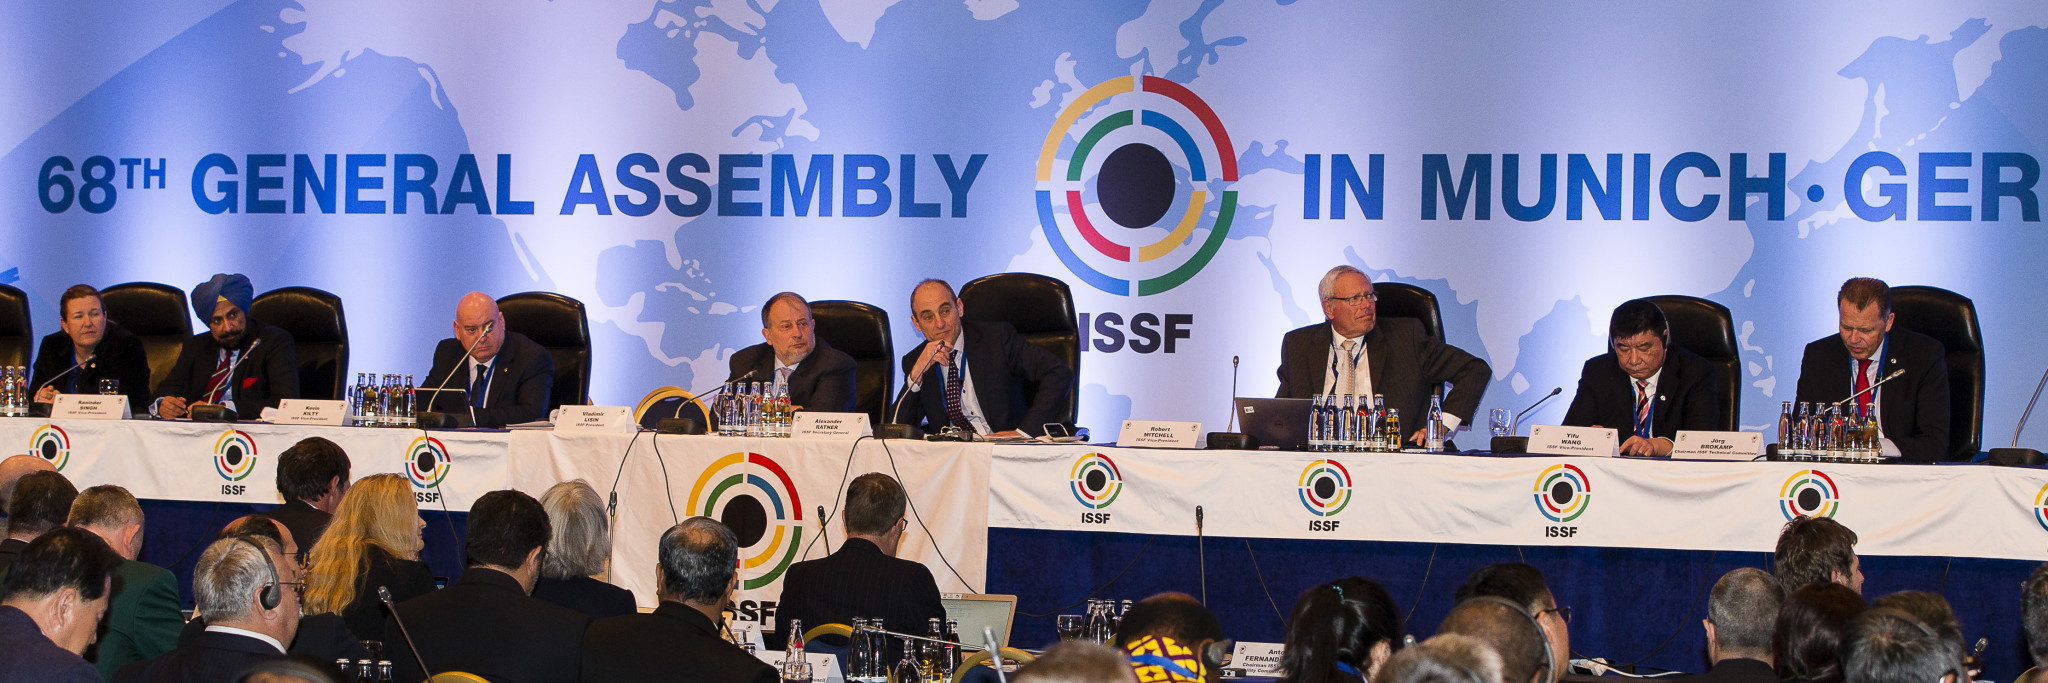 A plan to increase affiliation fees to the ISSF was voted out by a large majority of Member Federations ©ISSF